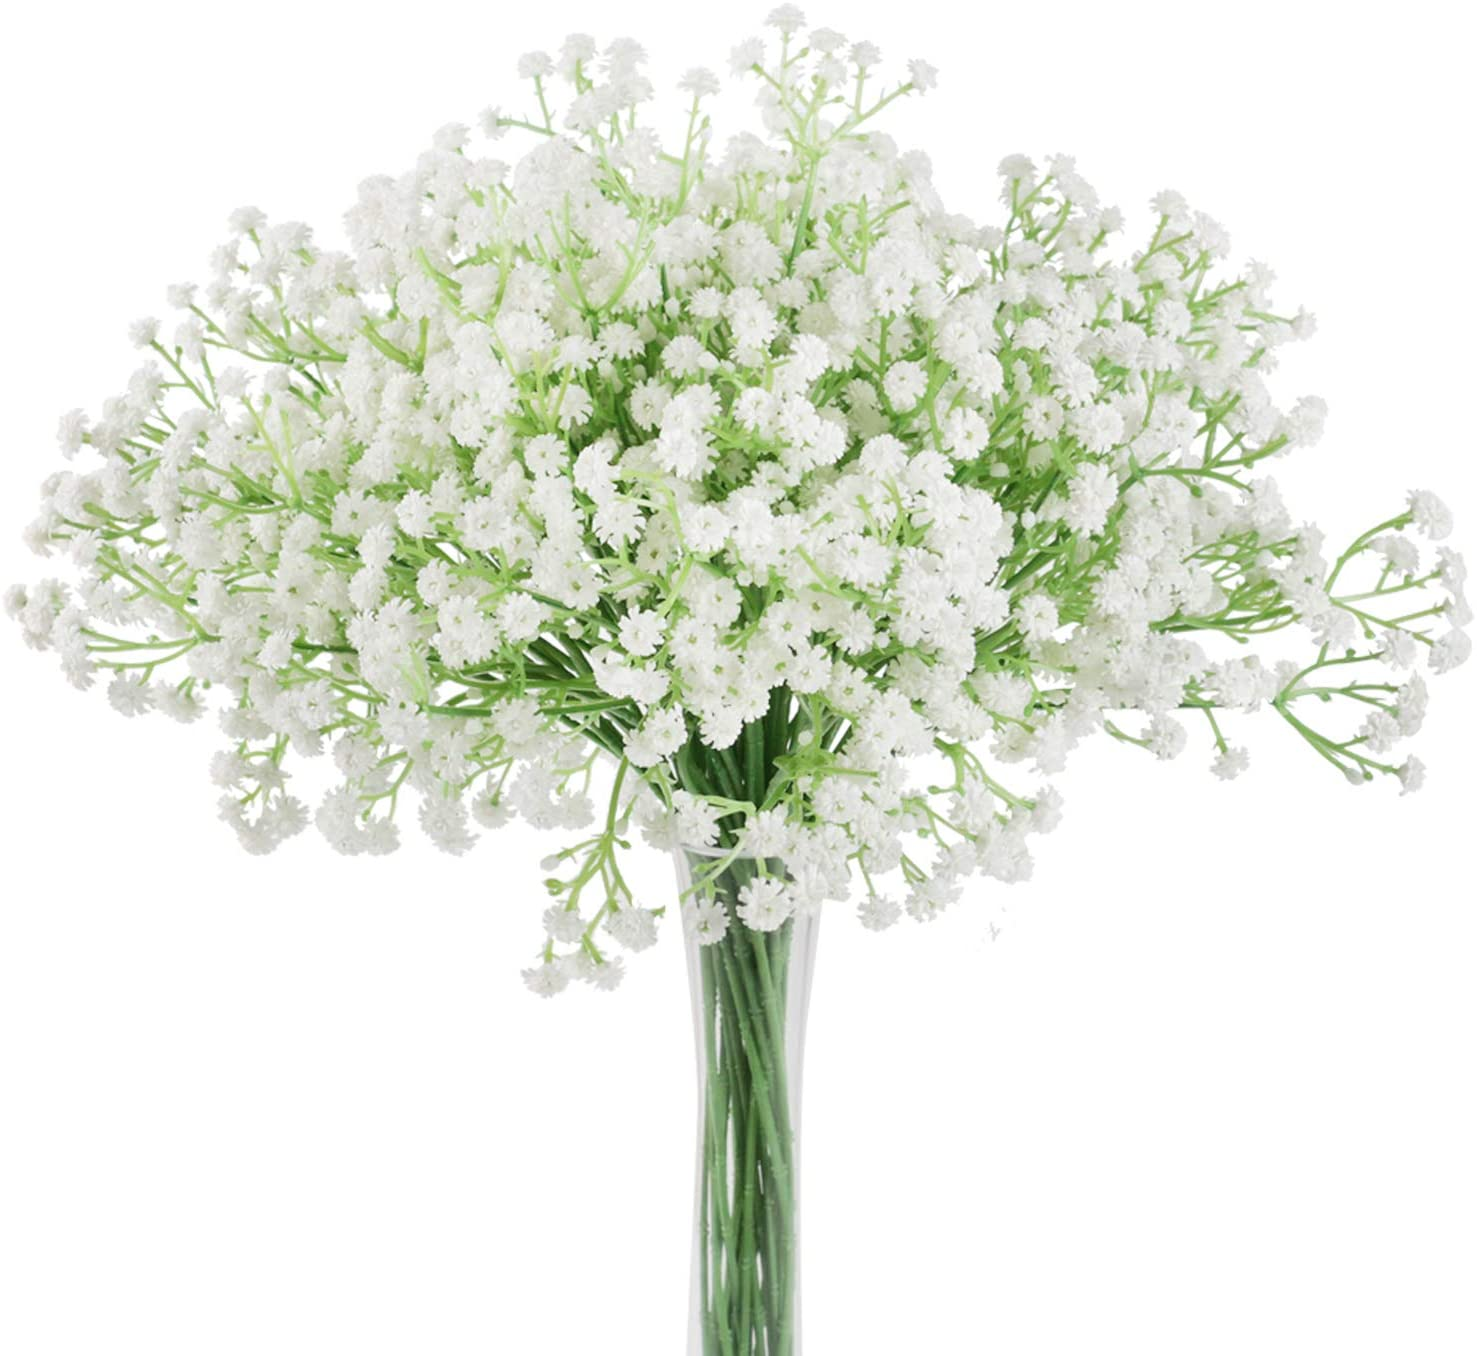 Aonewoe 12 Pcs Baby Breath Artificial Flowers Bulk Real Touch Gypsophila Bouquets for Centerpiece Arrangements Wedding Home Decoration(12Pcs,White)